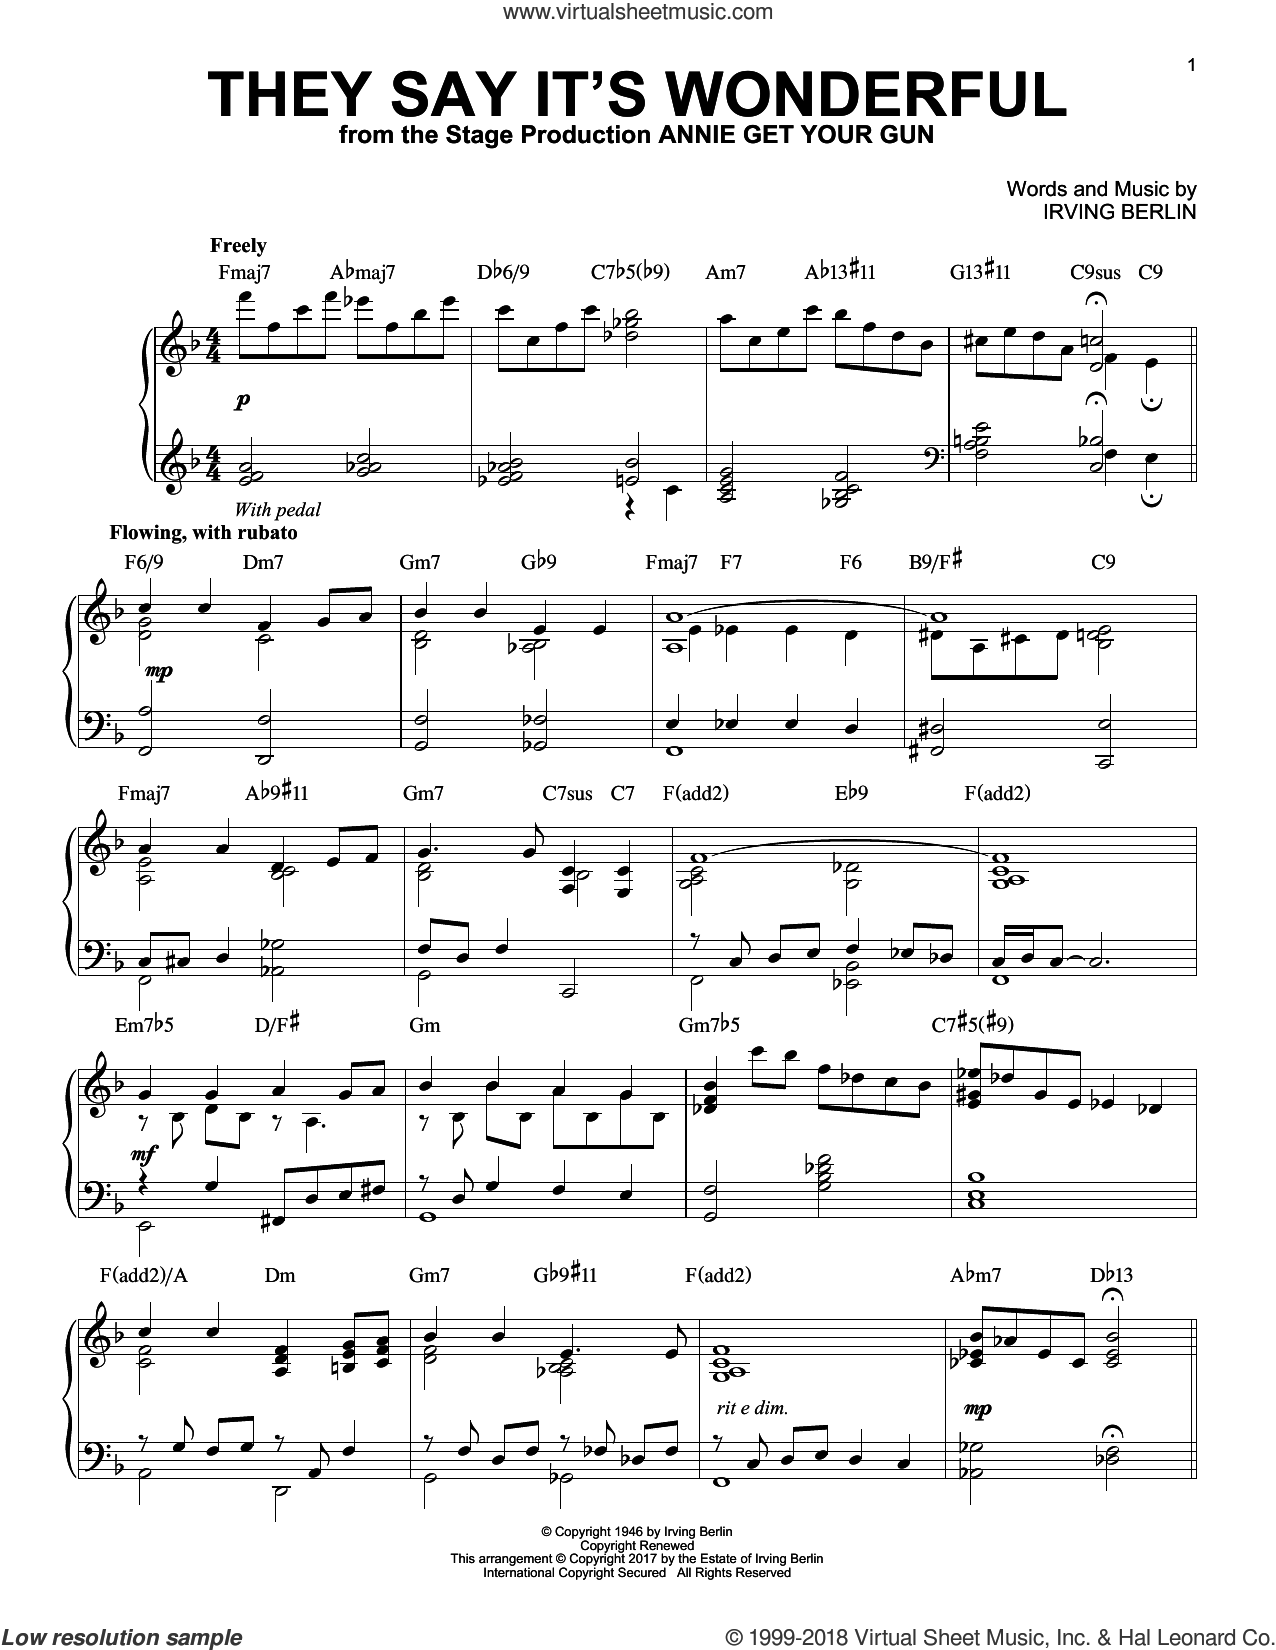 They Say It's Wonderful [Jazz version] sheet music for piano solo by Irving Berlin, intermediate skill level